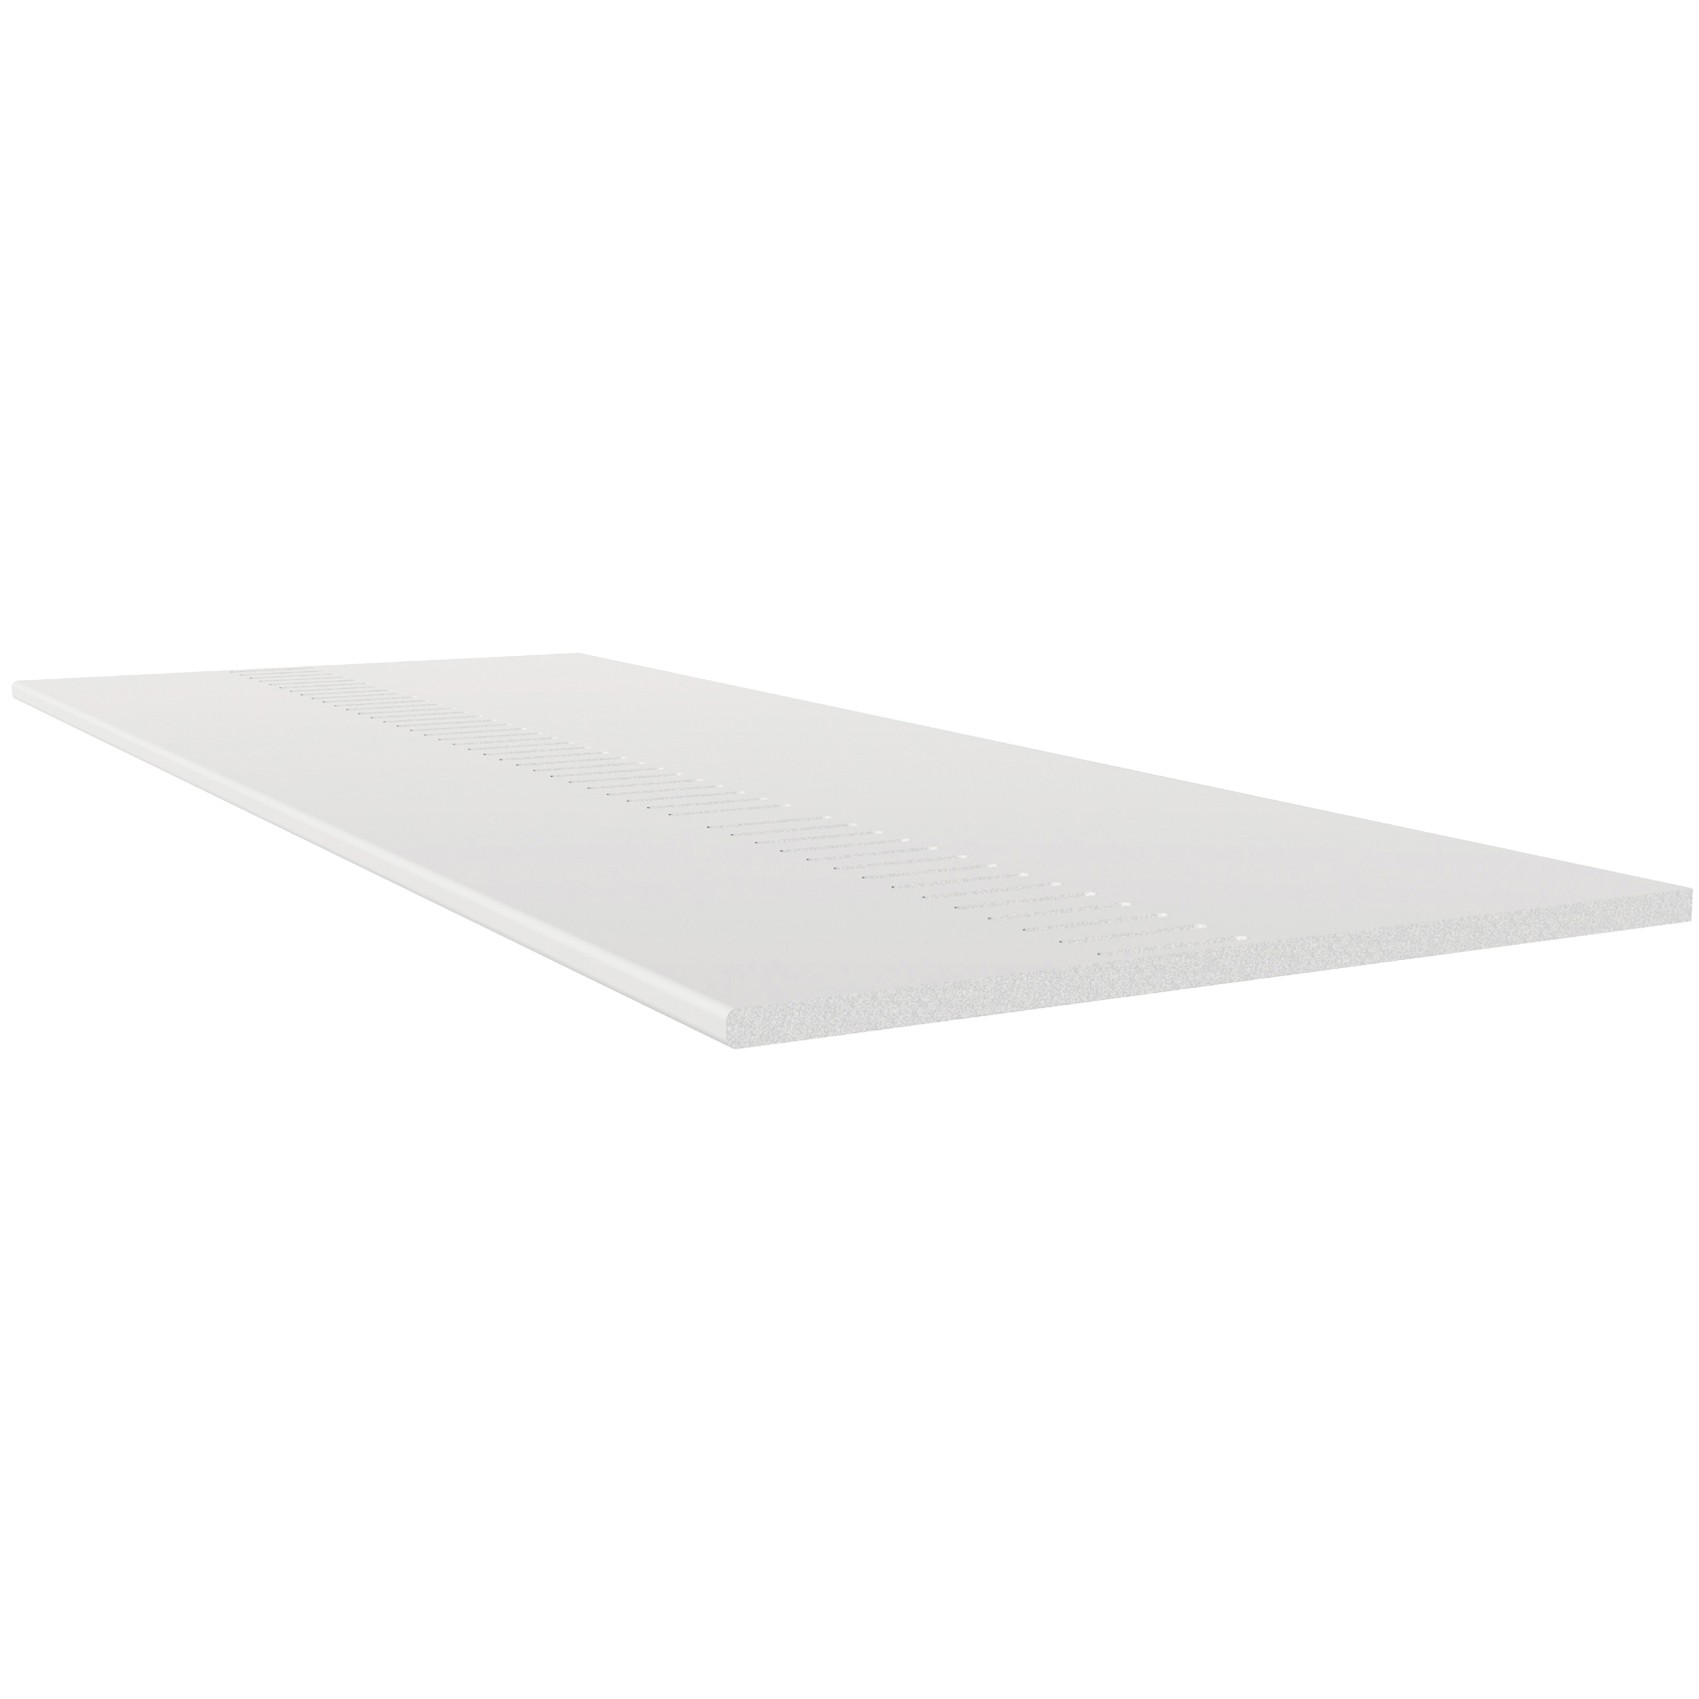 Freefoam Pre Vented 10mm Solid Soffit Board - White, 450mm, 5 metre